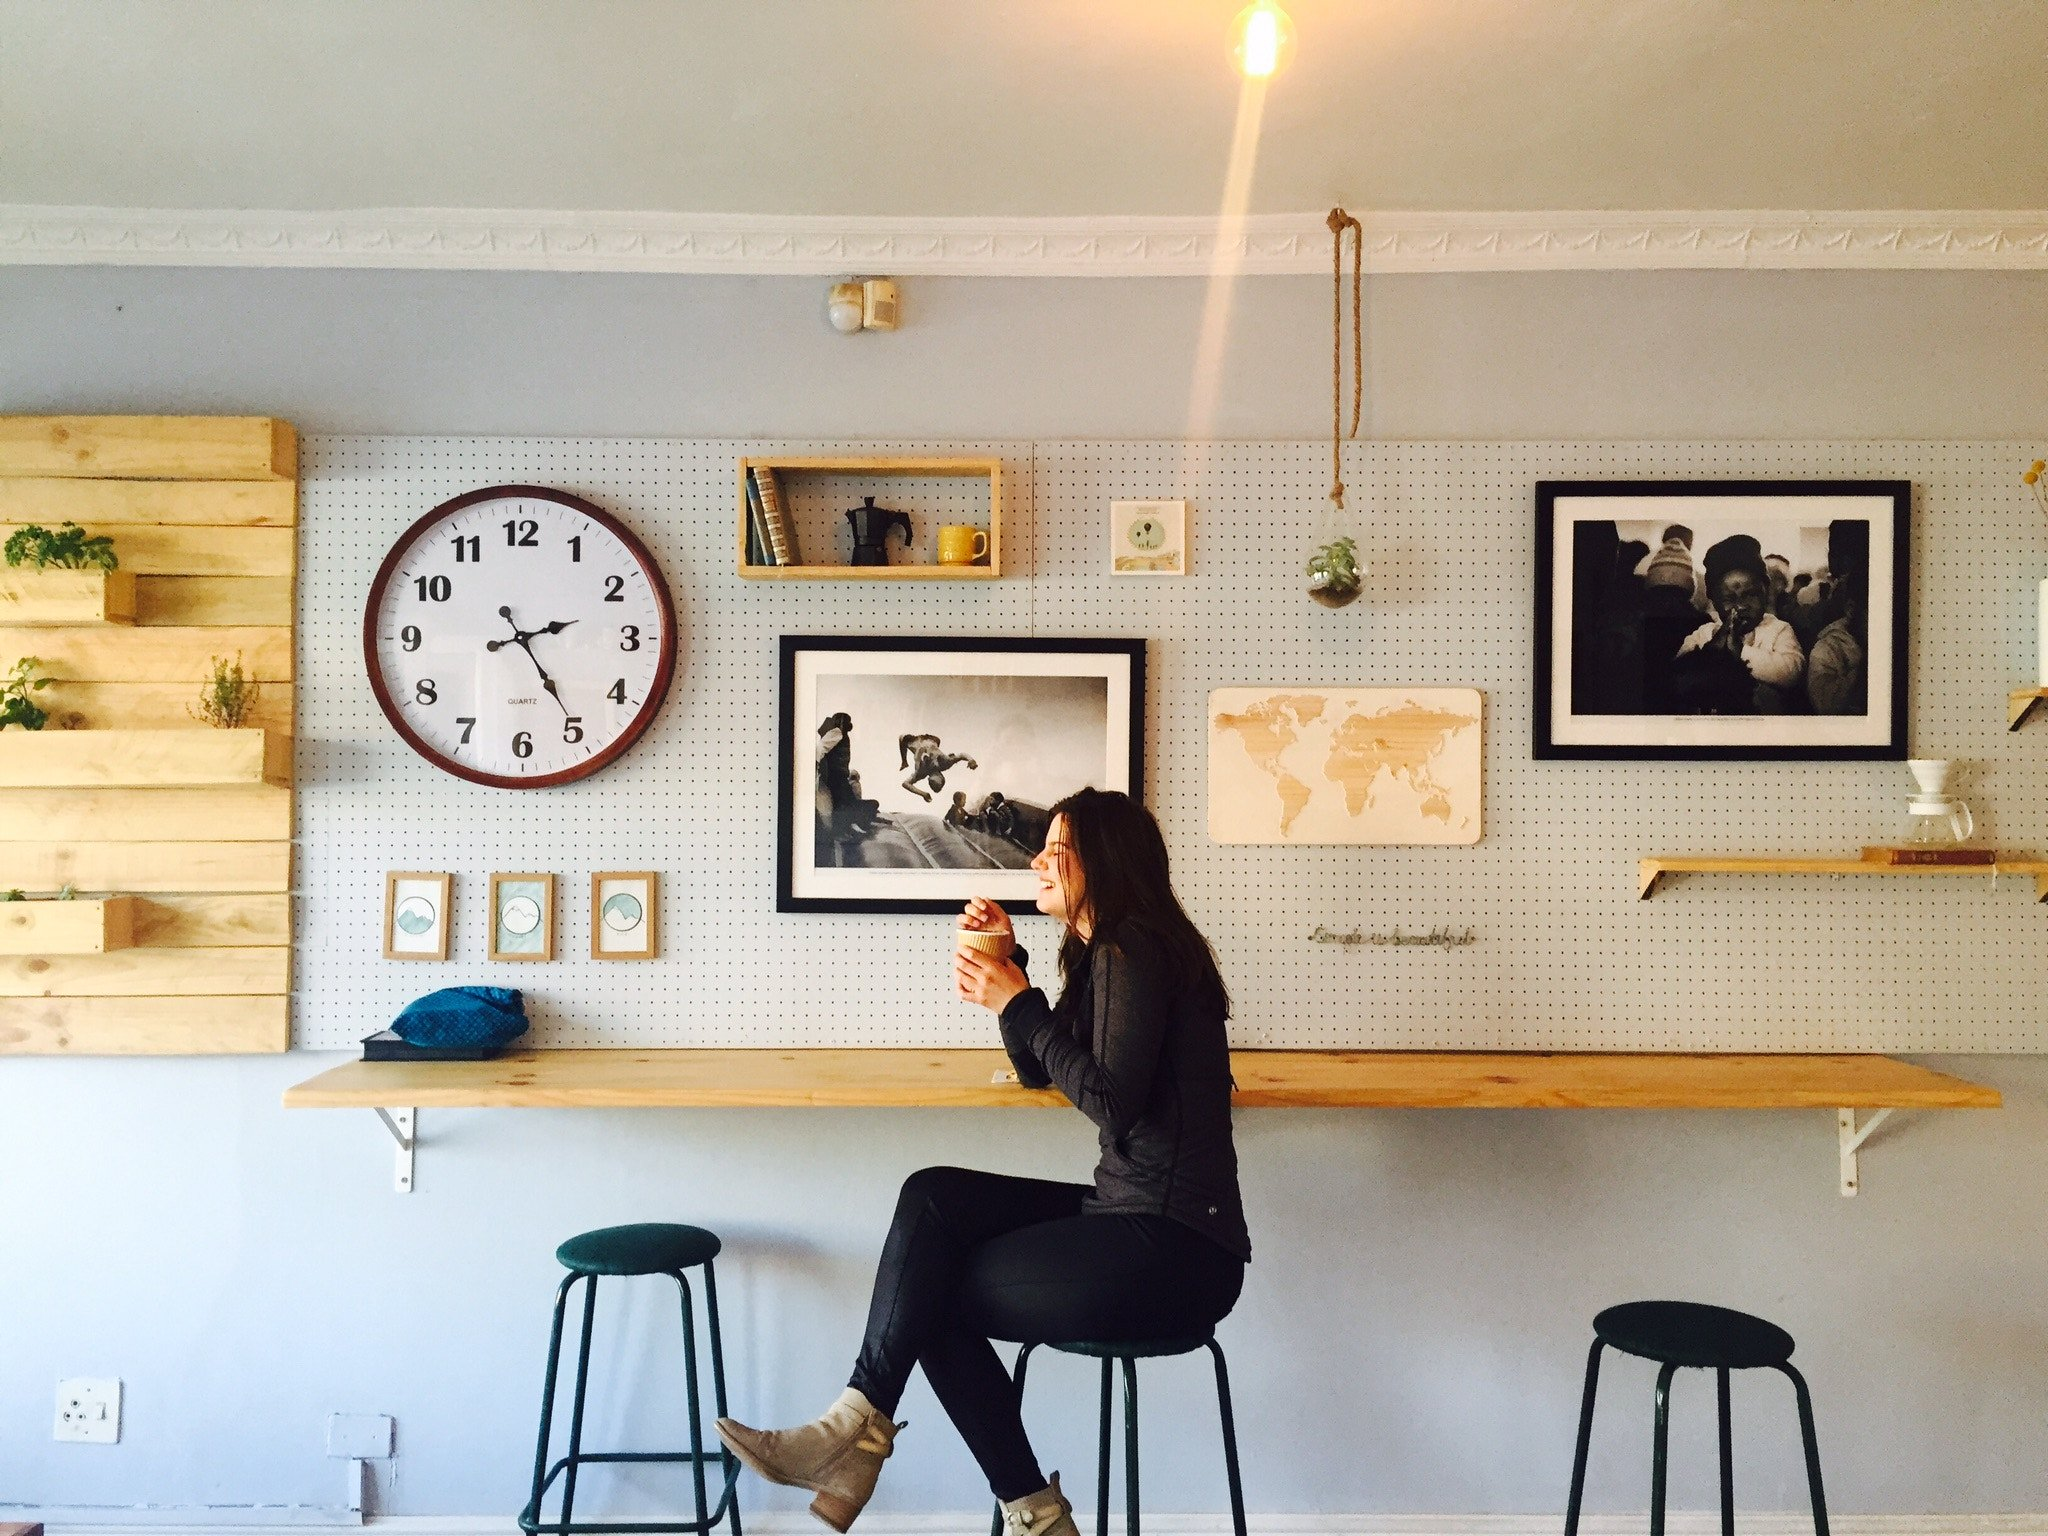 This year's most in-demand freelance skills and how to get them